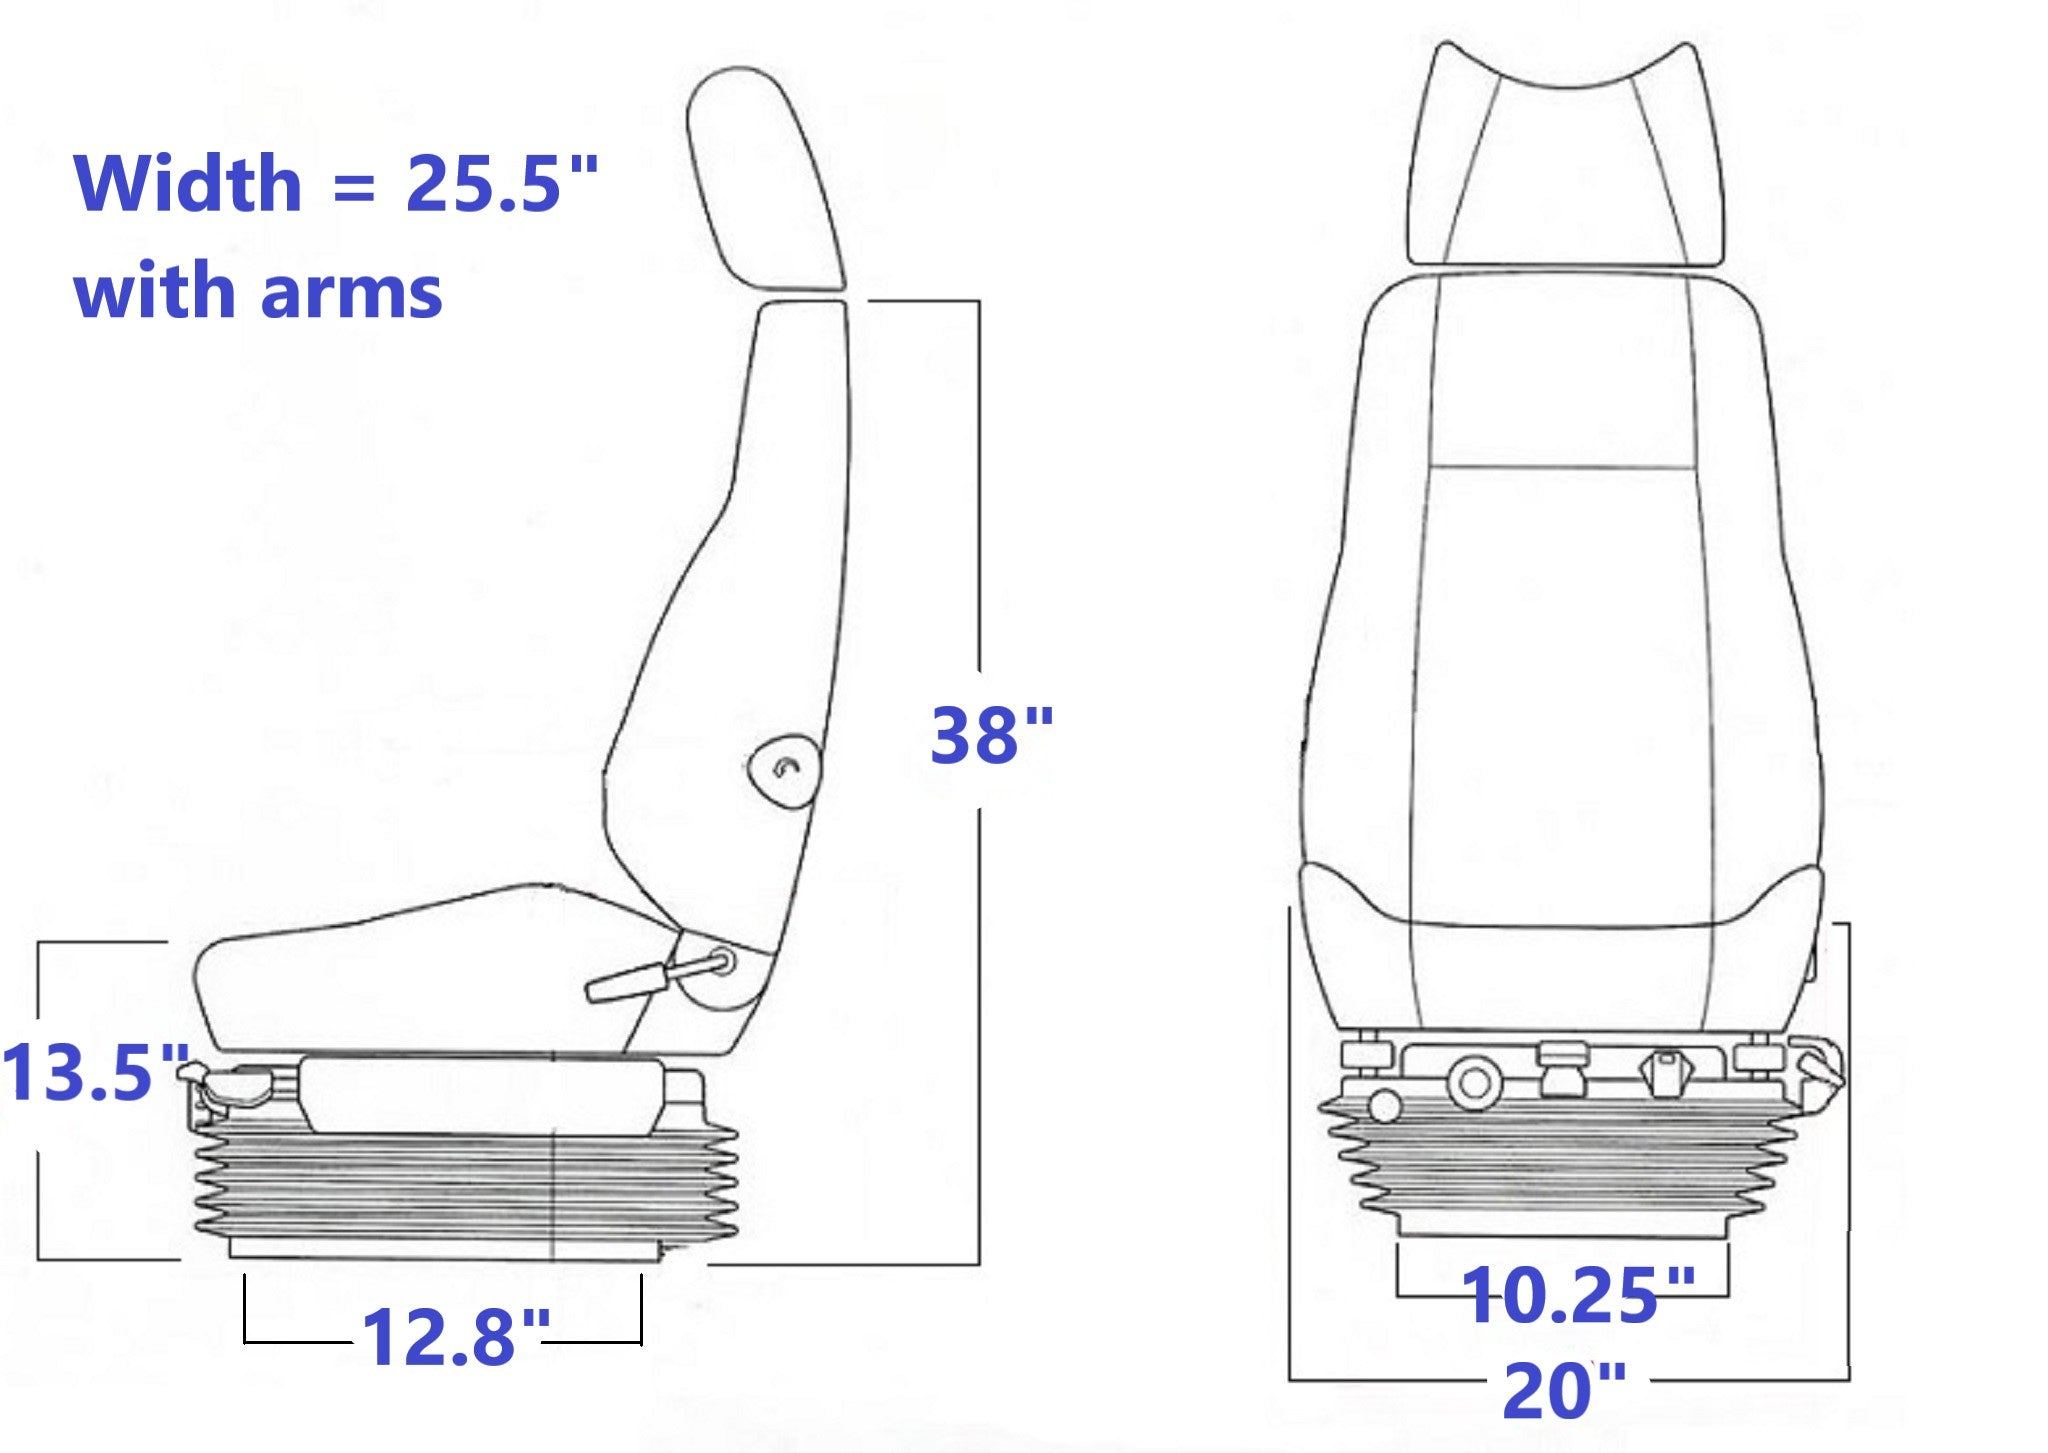 KAB 854 air articulated truck, dozer, loader seat